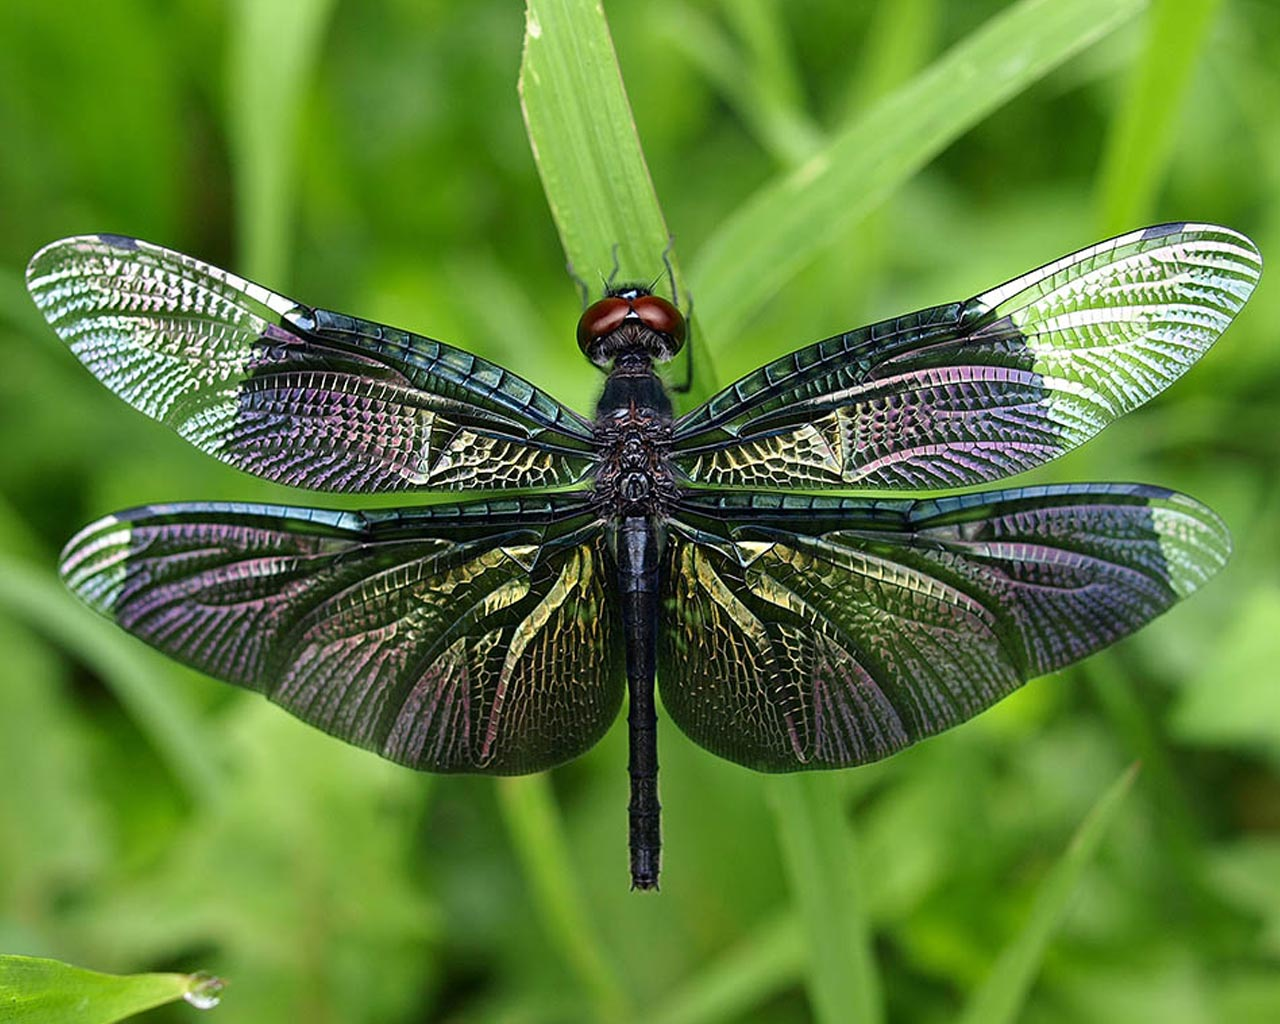 Amazing Dragonfly Insect  Dragonfly Facts, Images